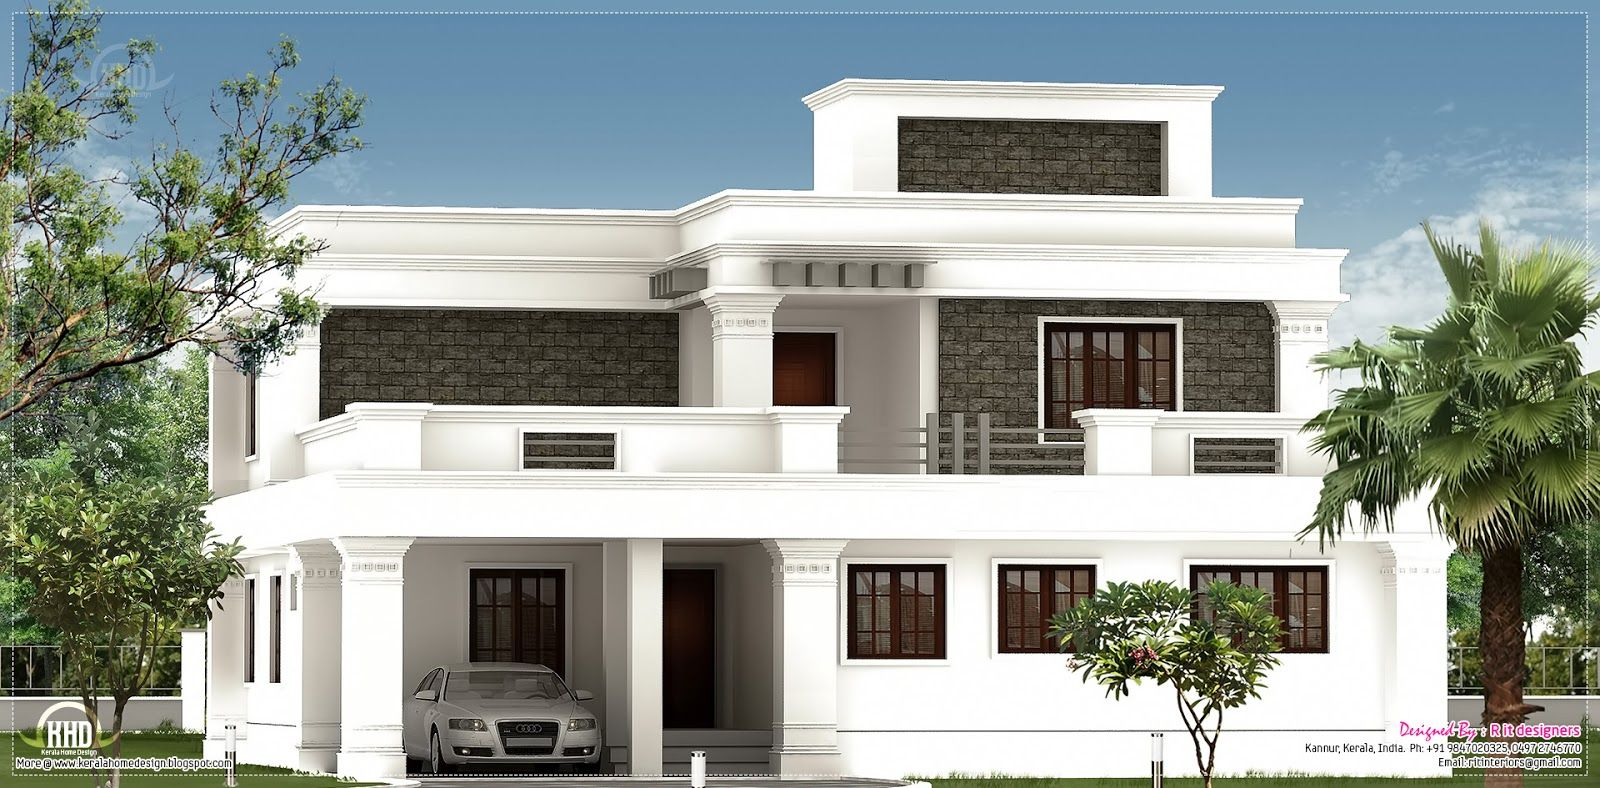 Flat roof homes designs flat roof villa exterior in 2400 for Kerala house interior painting photos